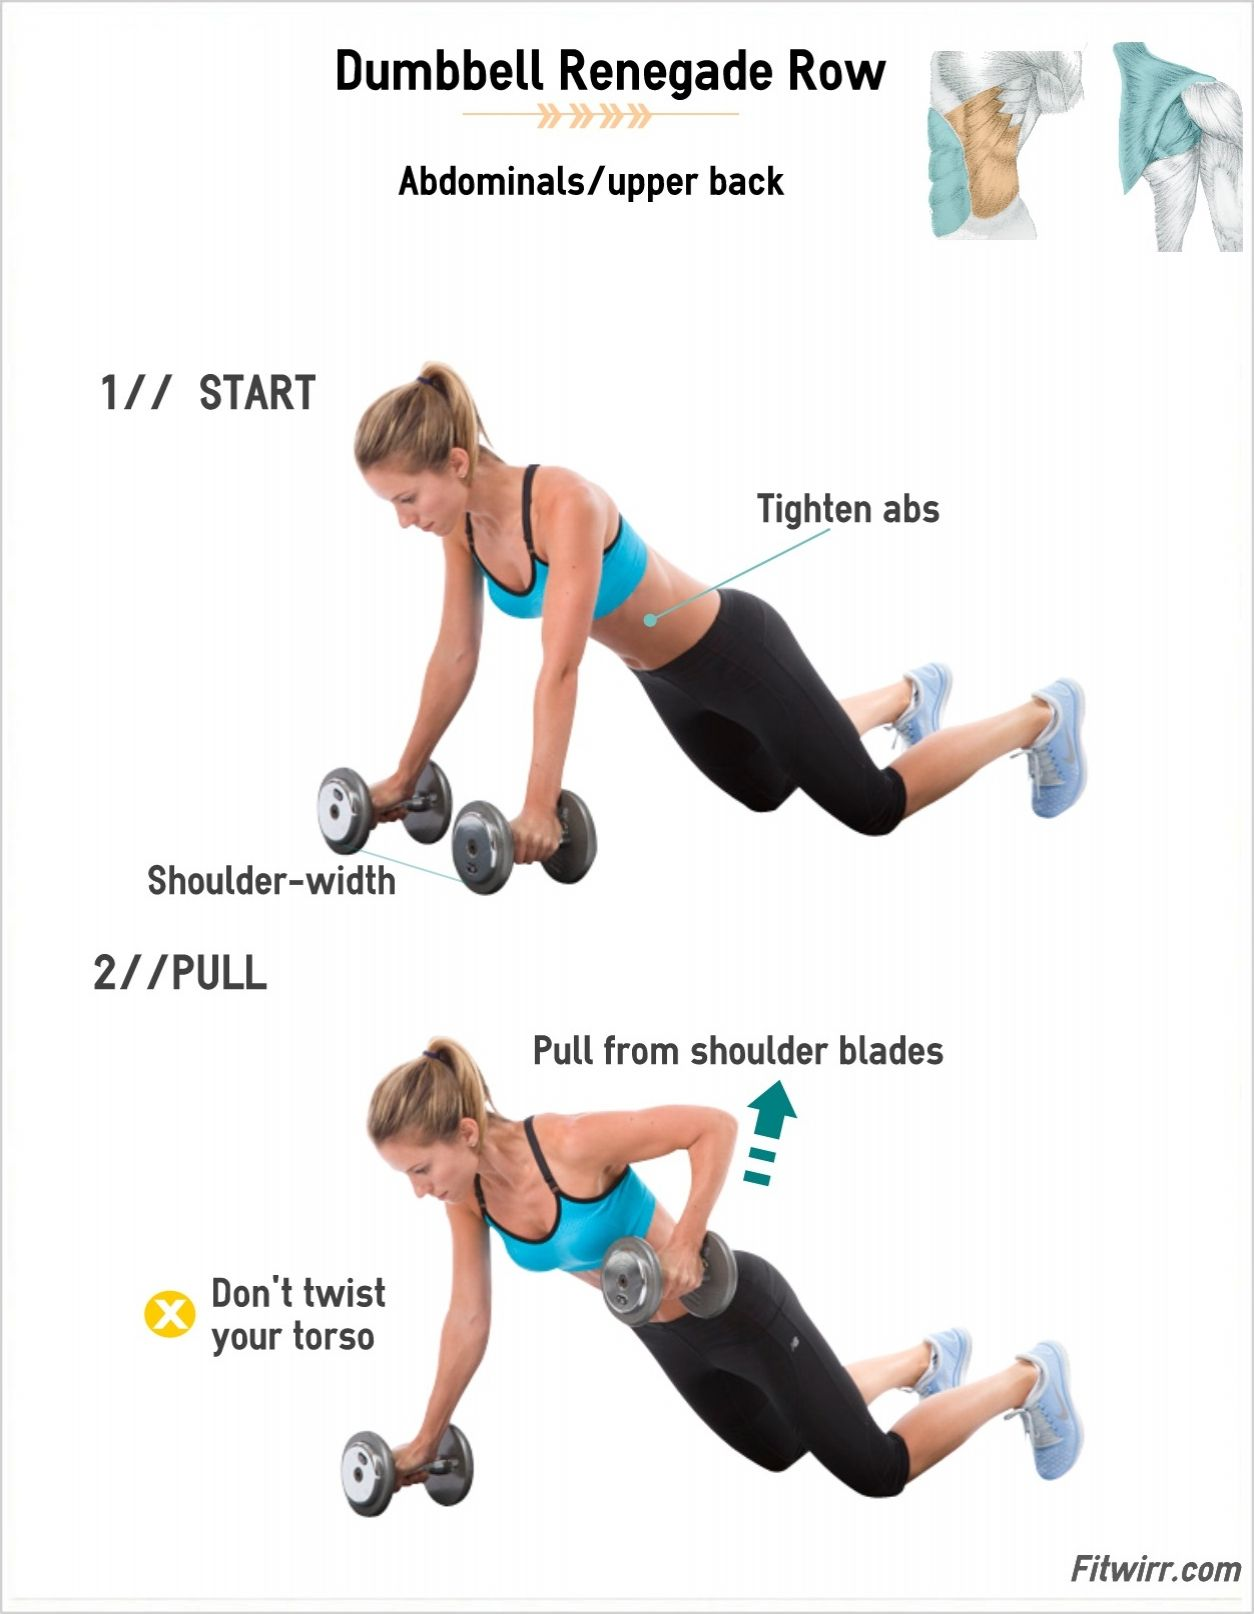 Dumbbell Renegade Rows Fitwirr Renegade Rows Dumbell Workout Dumbbell